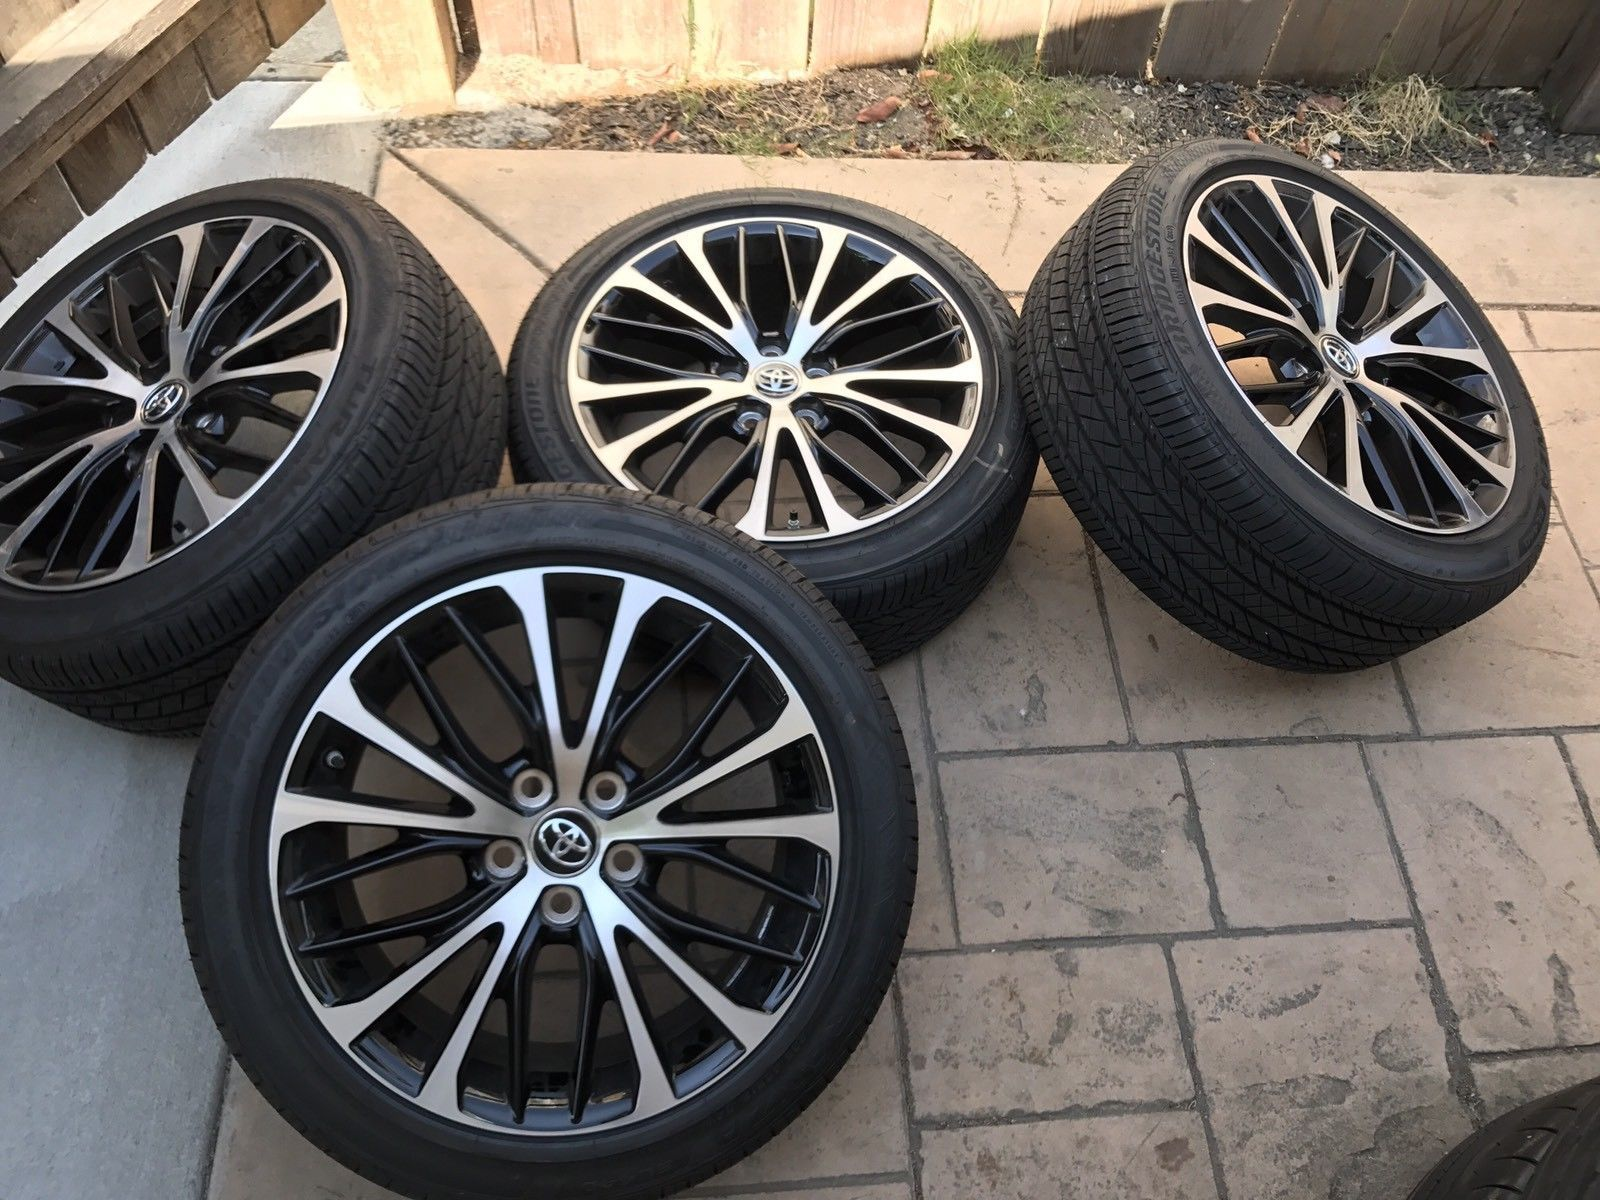 awesome great 2018 toyota camry 18 oem wheels tires factory rims tpms 2017 2018 check more. Black Bedroom Furniture Sets. Home Design Ideas